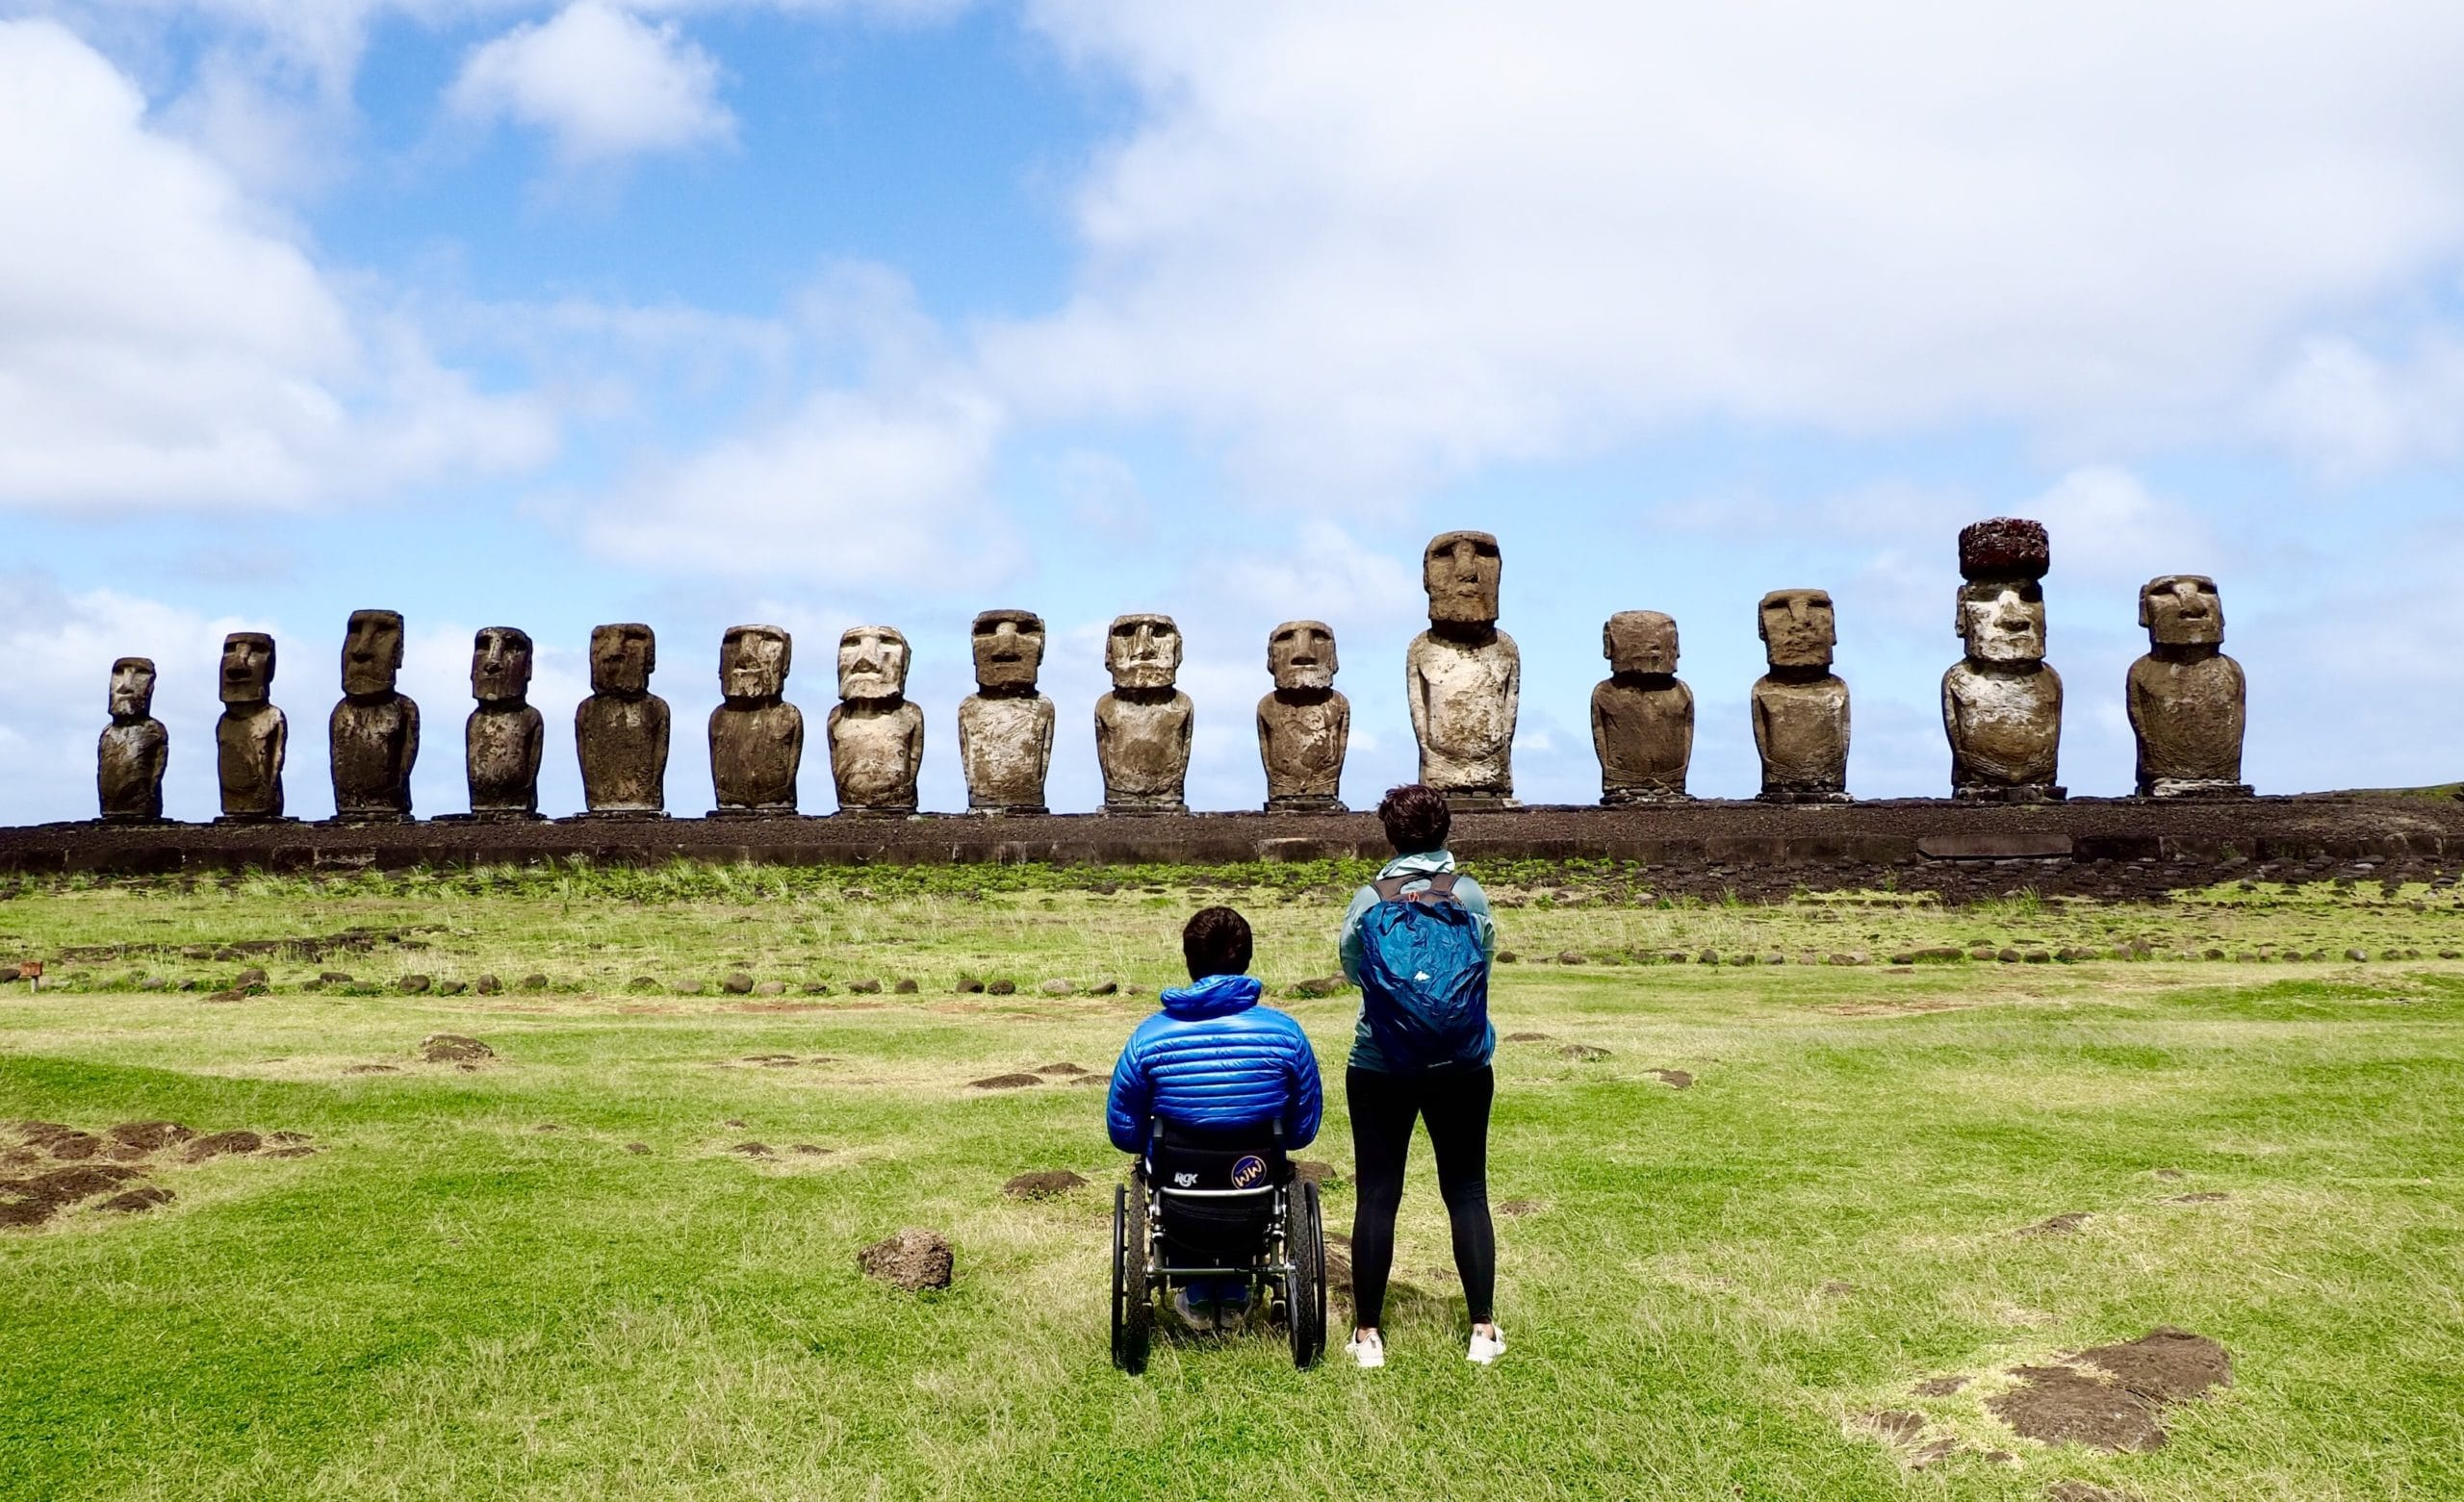 Pierre in his wheelchair and Myriam standing with their backs to the camera. They are looking at the statues of Easter Island.